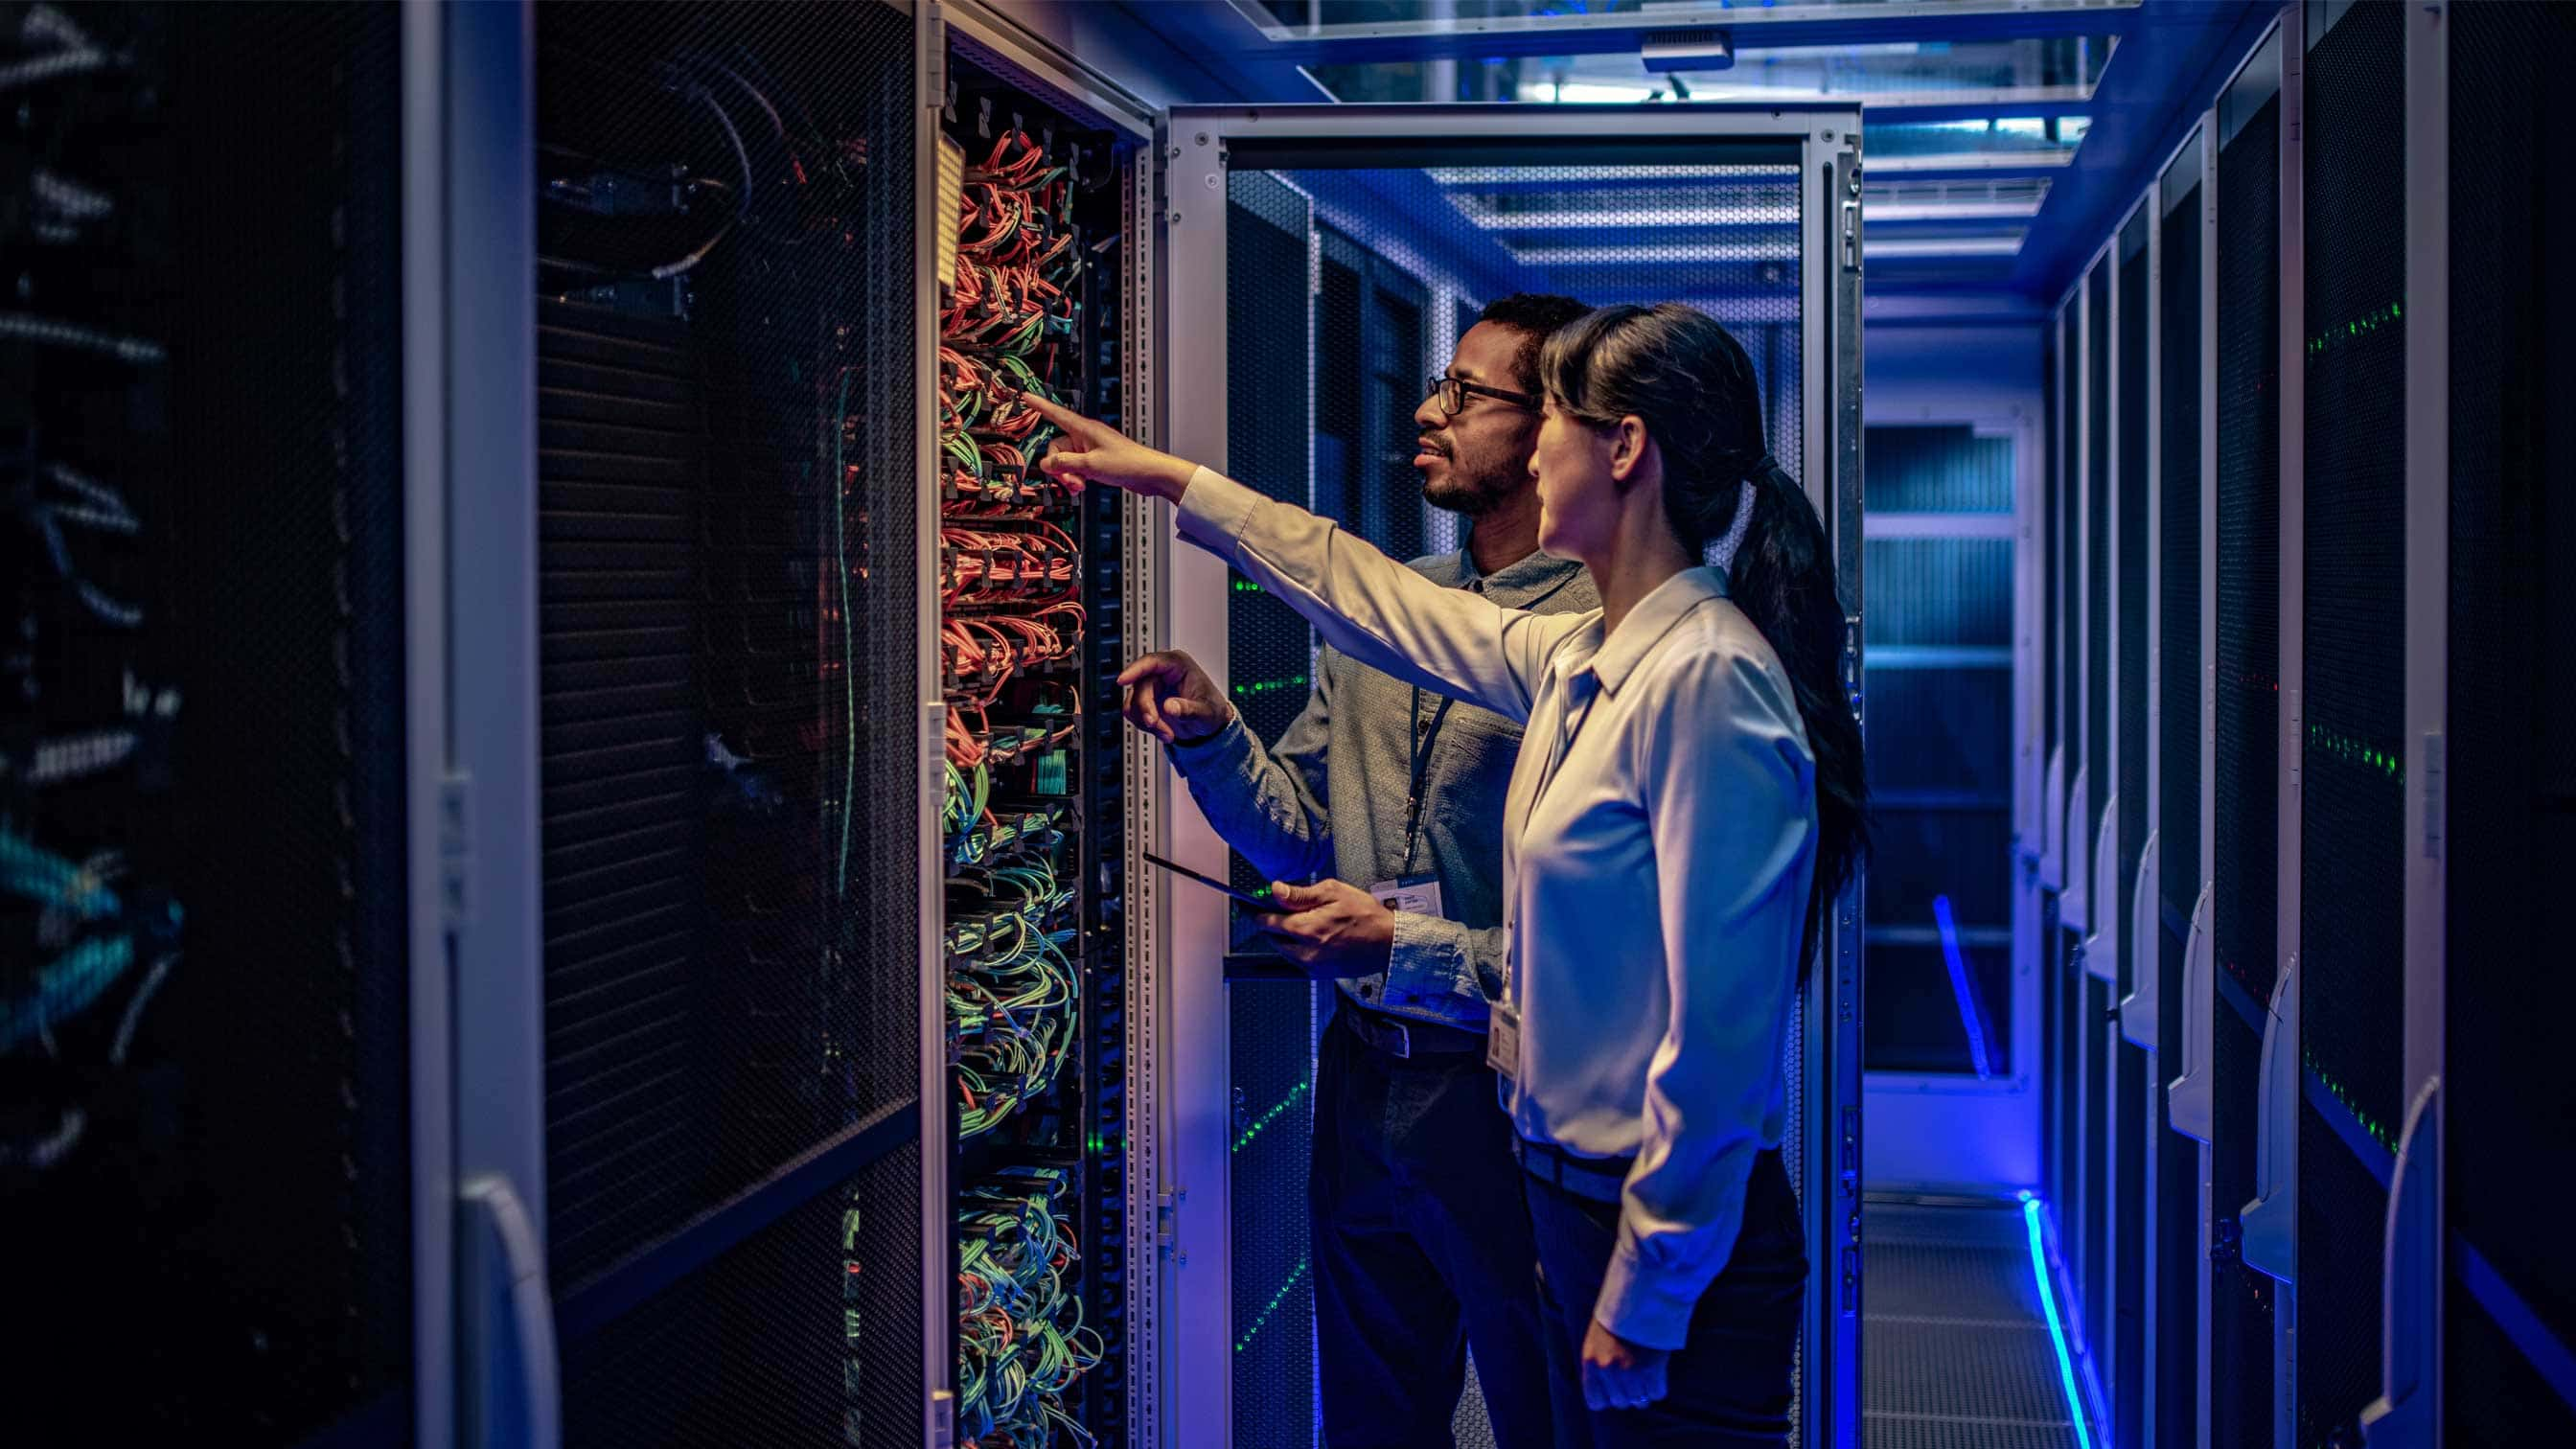 Two experts looking at racks in data centre